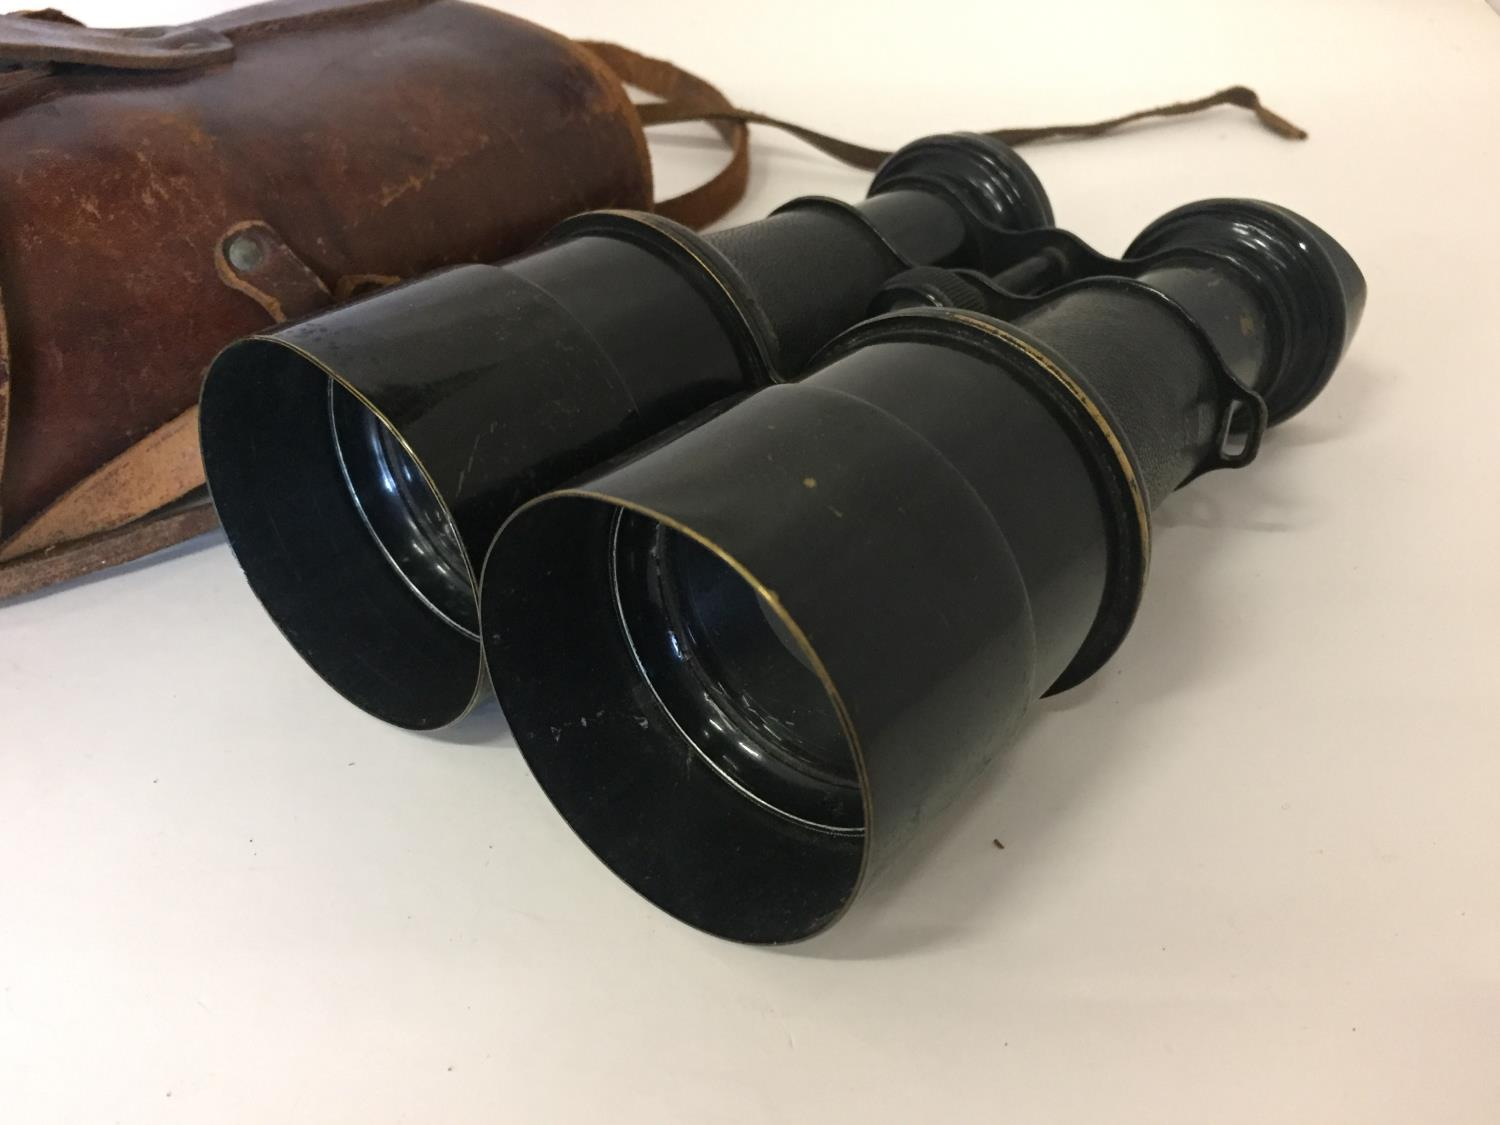 A PAIR OF EARLY 20TH CENTURY PILOTE BINOCULARS BY IRIS DE PARIS WITH LEATHER CASE - Image 2 of 4